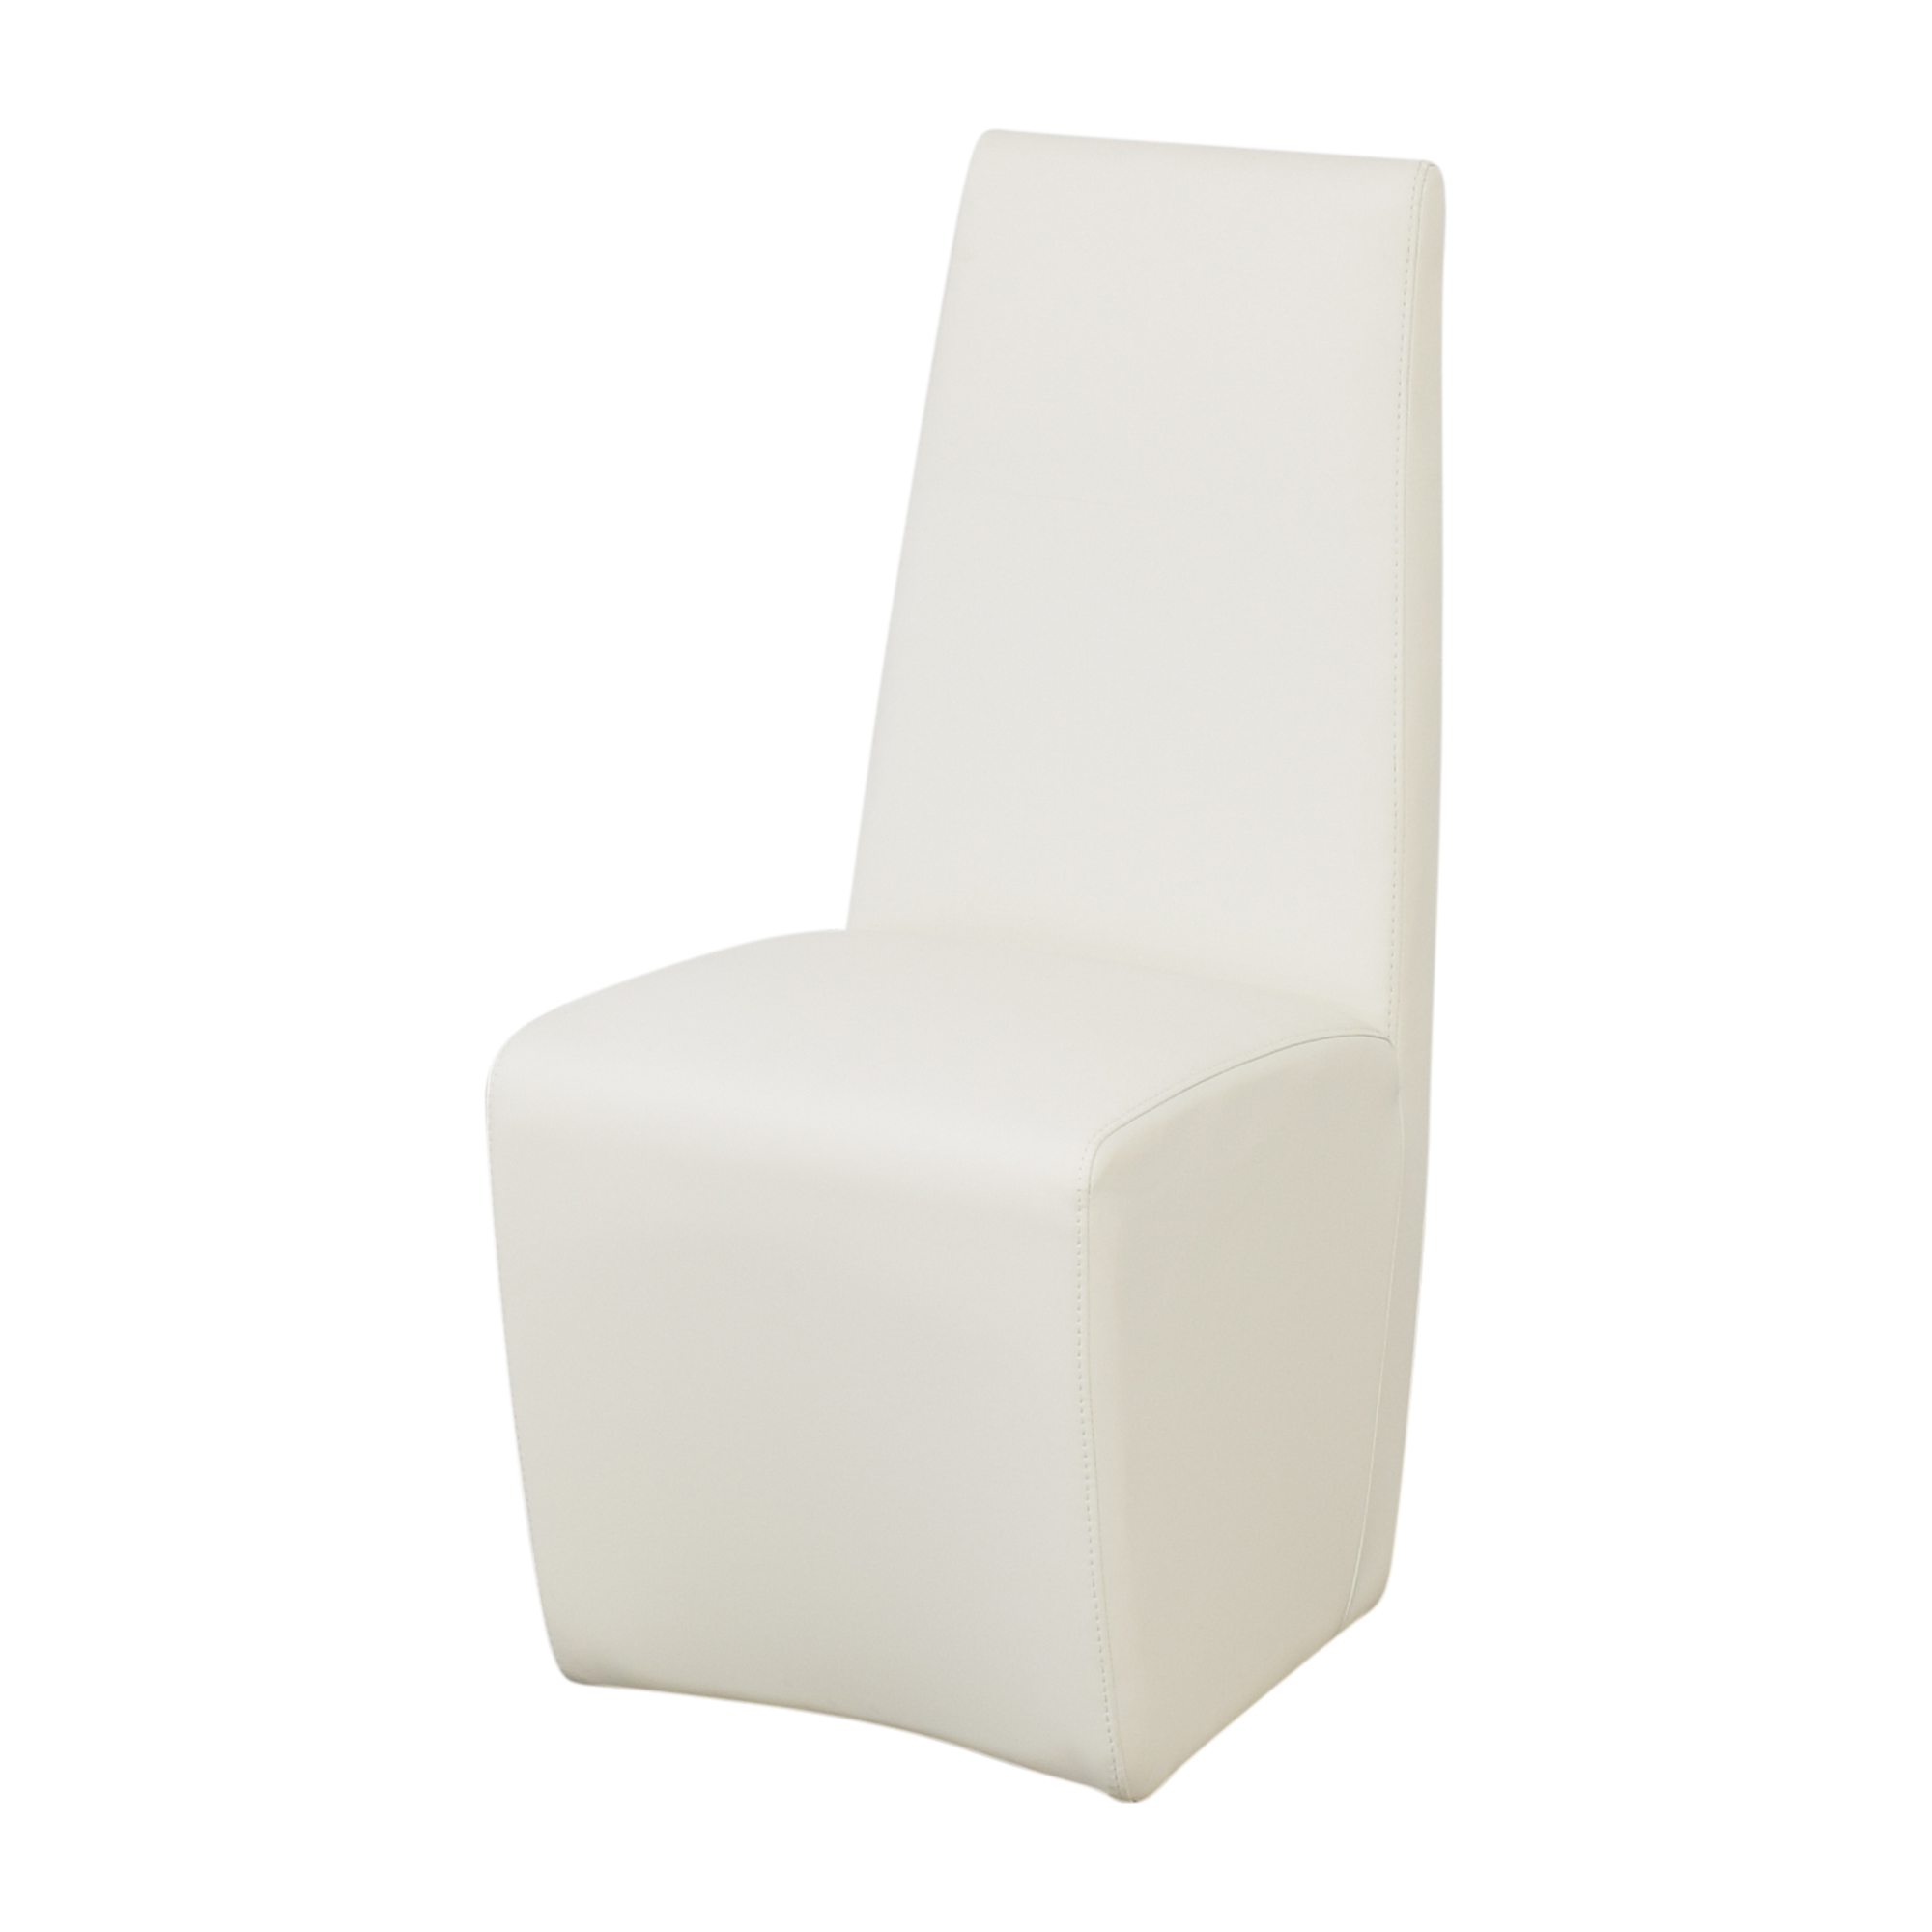 Star Furniture Star Furniture Ritz by Essentials Tobi Dining Side Chairs coupon